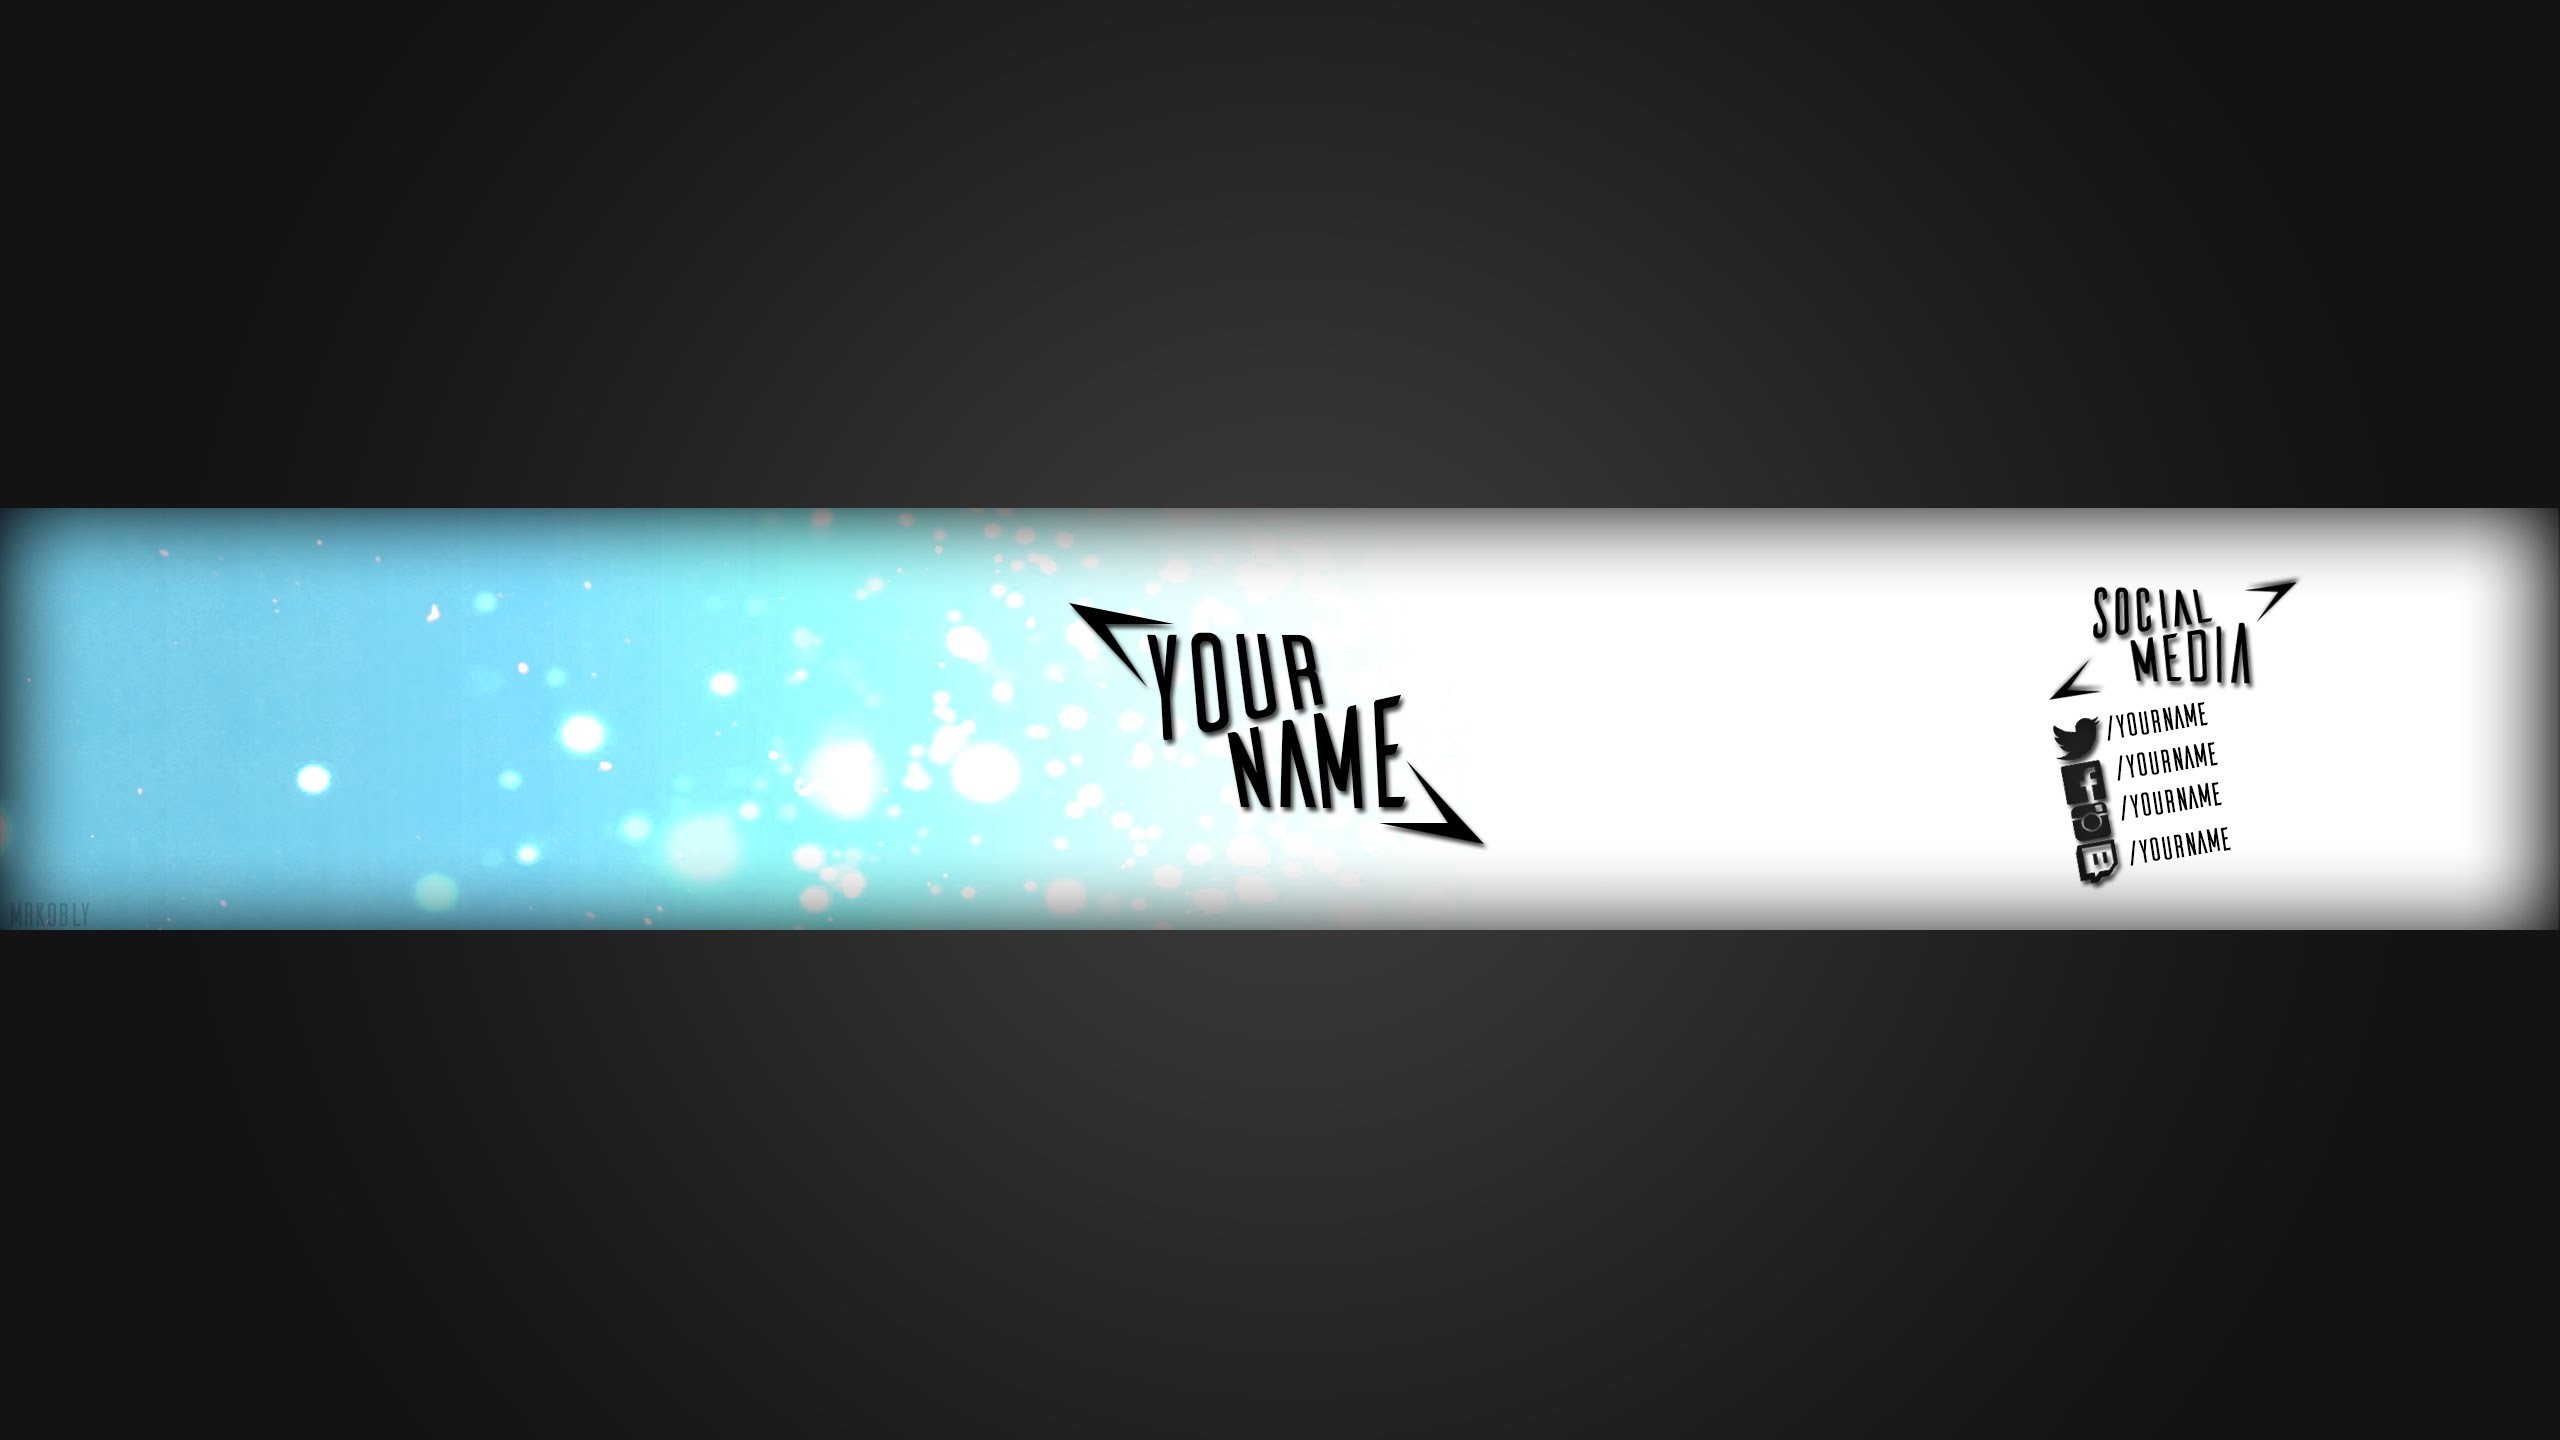 Youtube Banner Template   Photoshop CC   Free Download   Simple 2D – YouTube